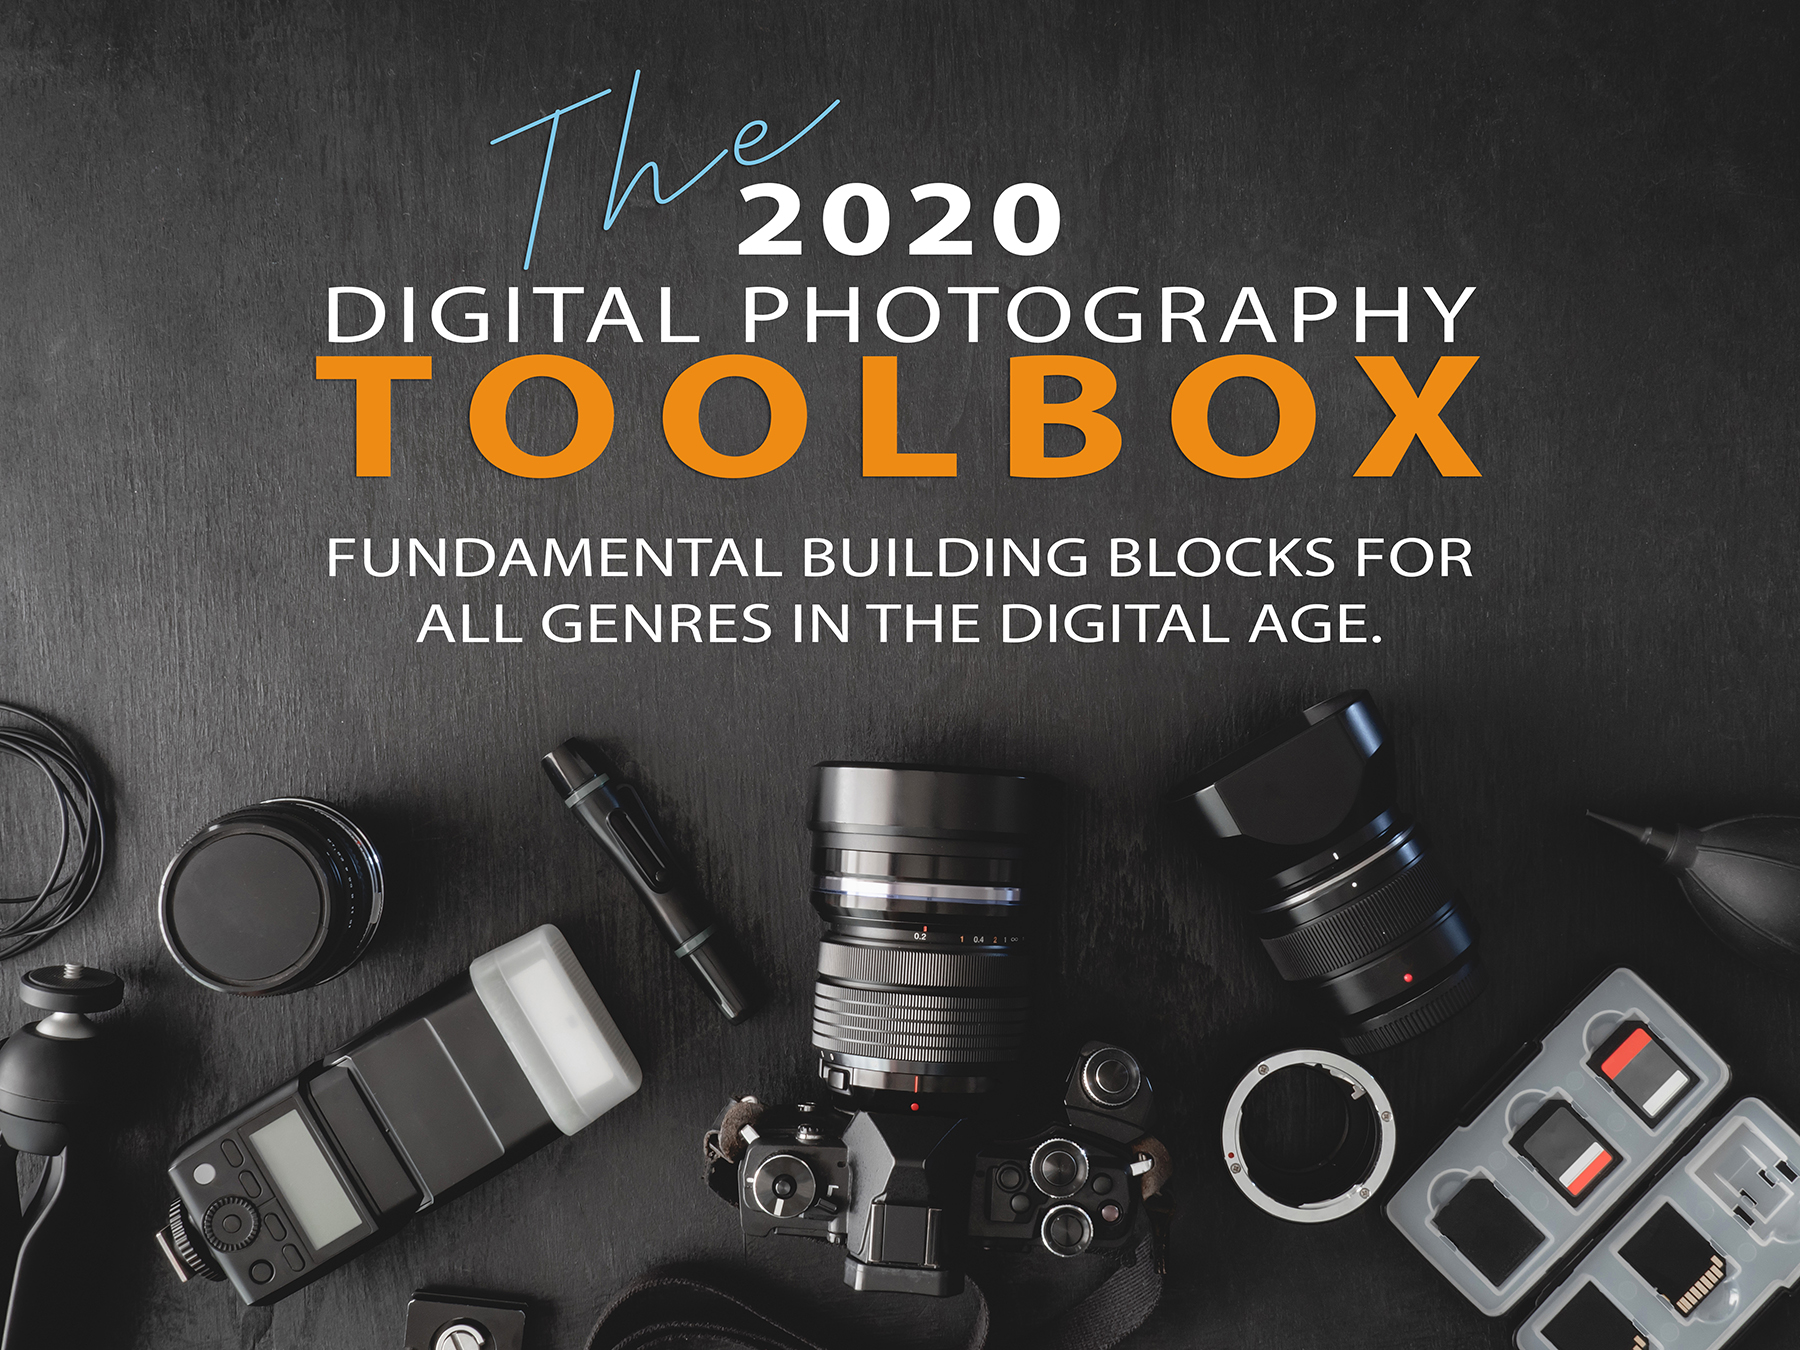 The 2020 Digital Photography Toolbox online course